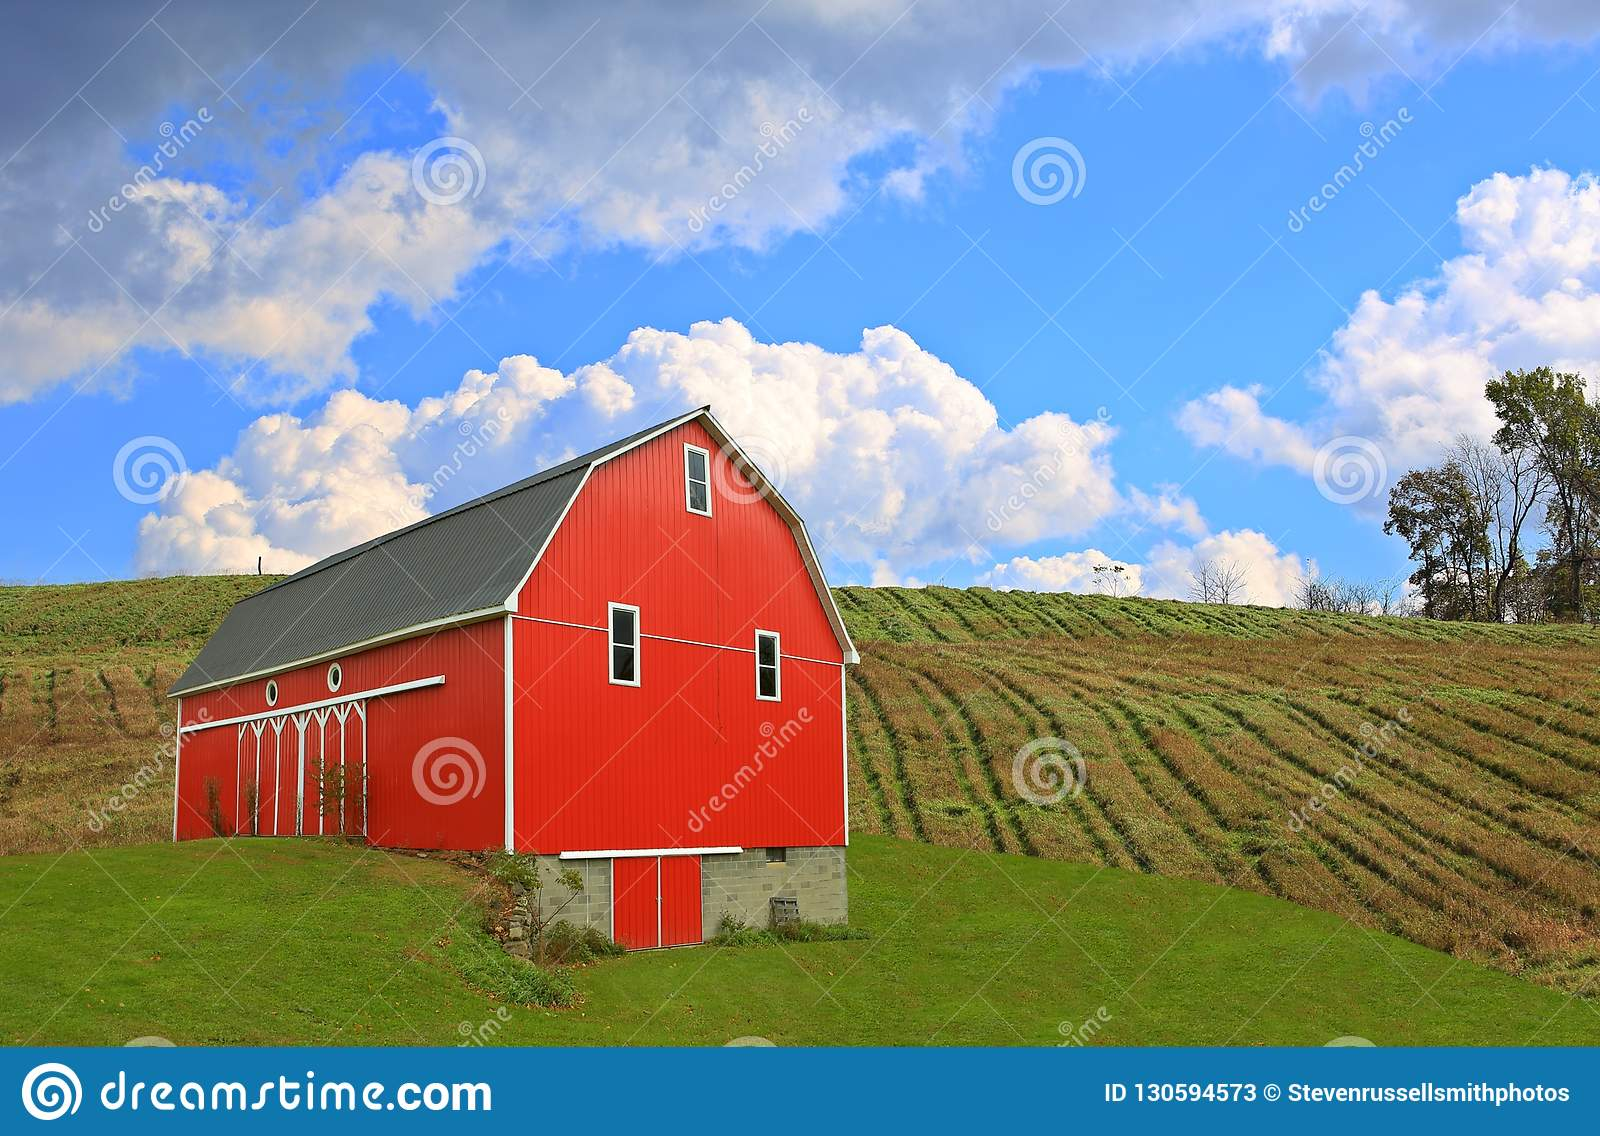 Red Barn in the Ohio Countryside